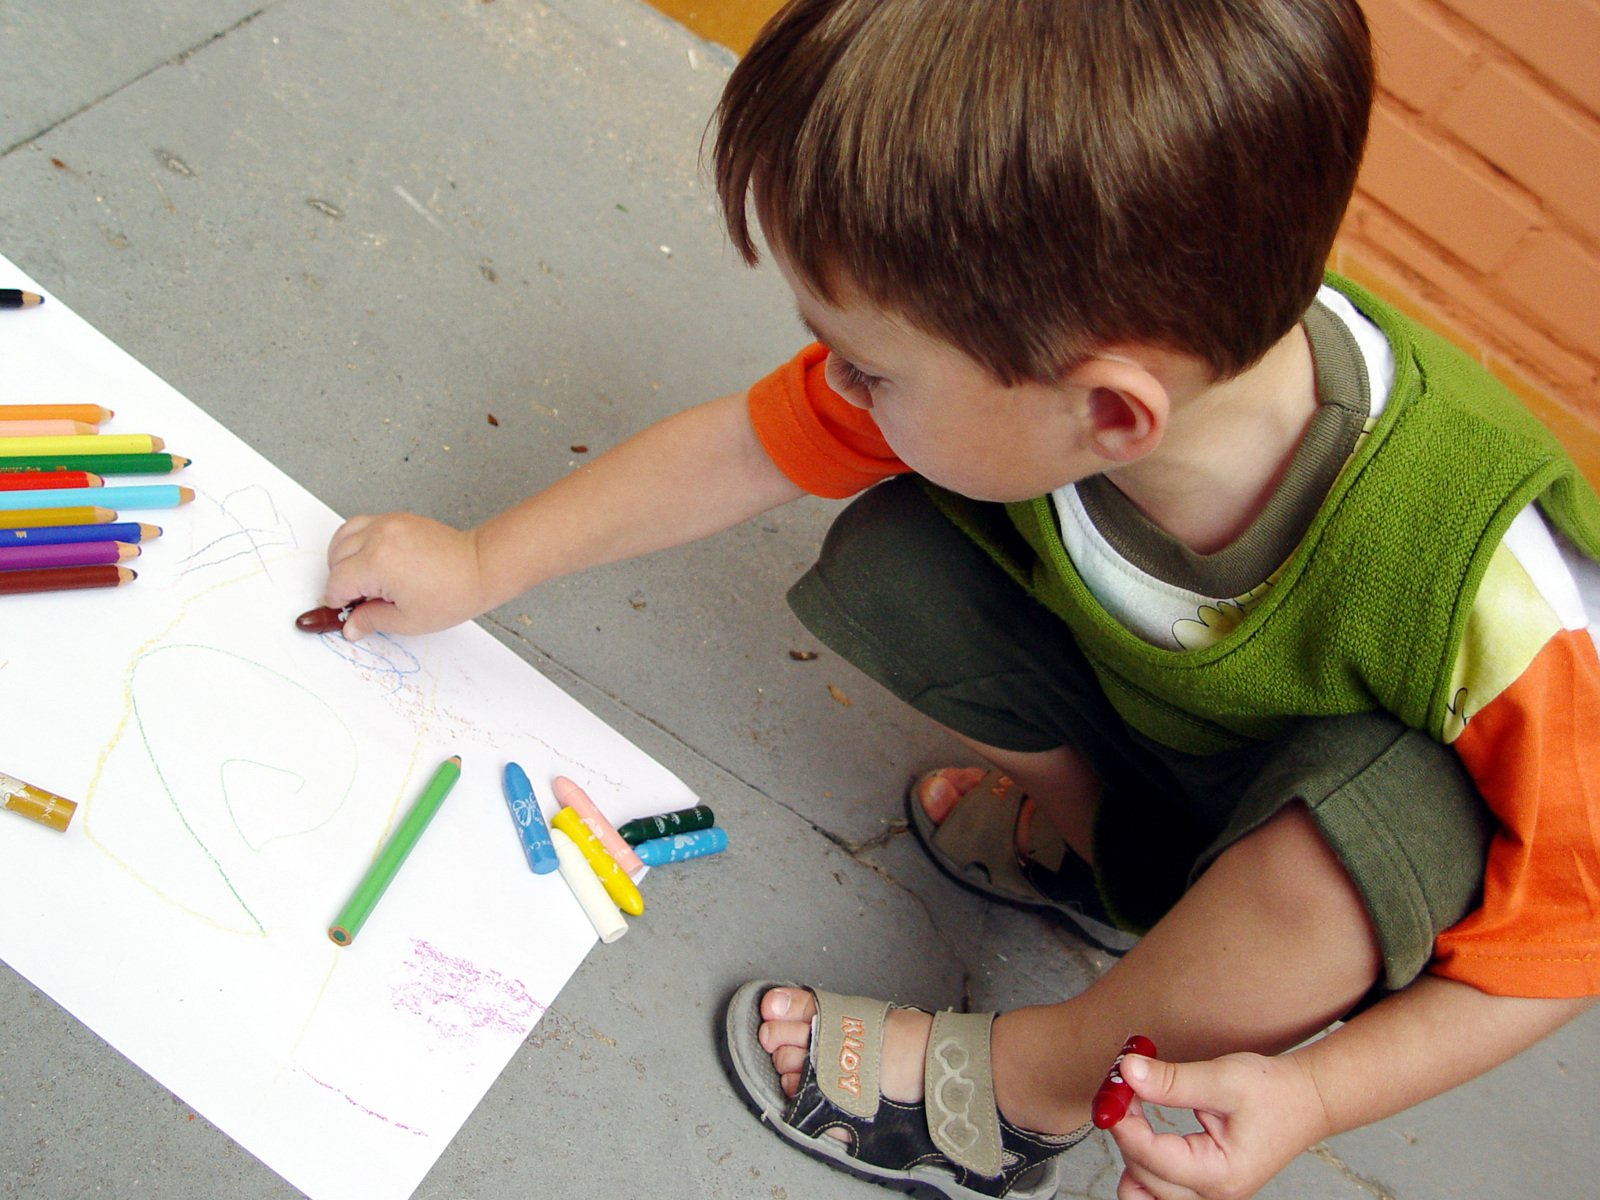 Distance Learning - Child Drawing